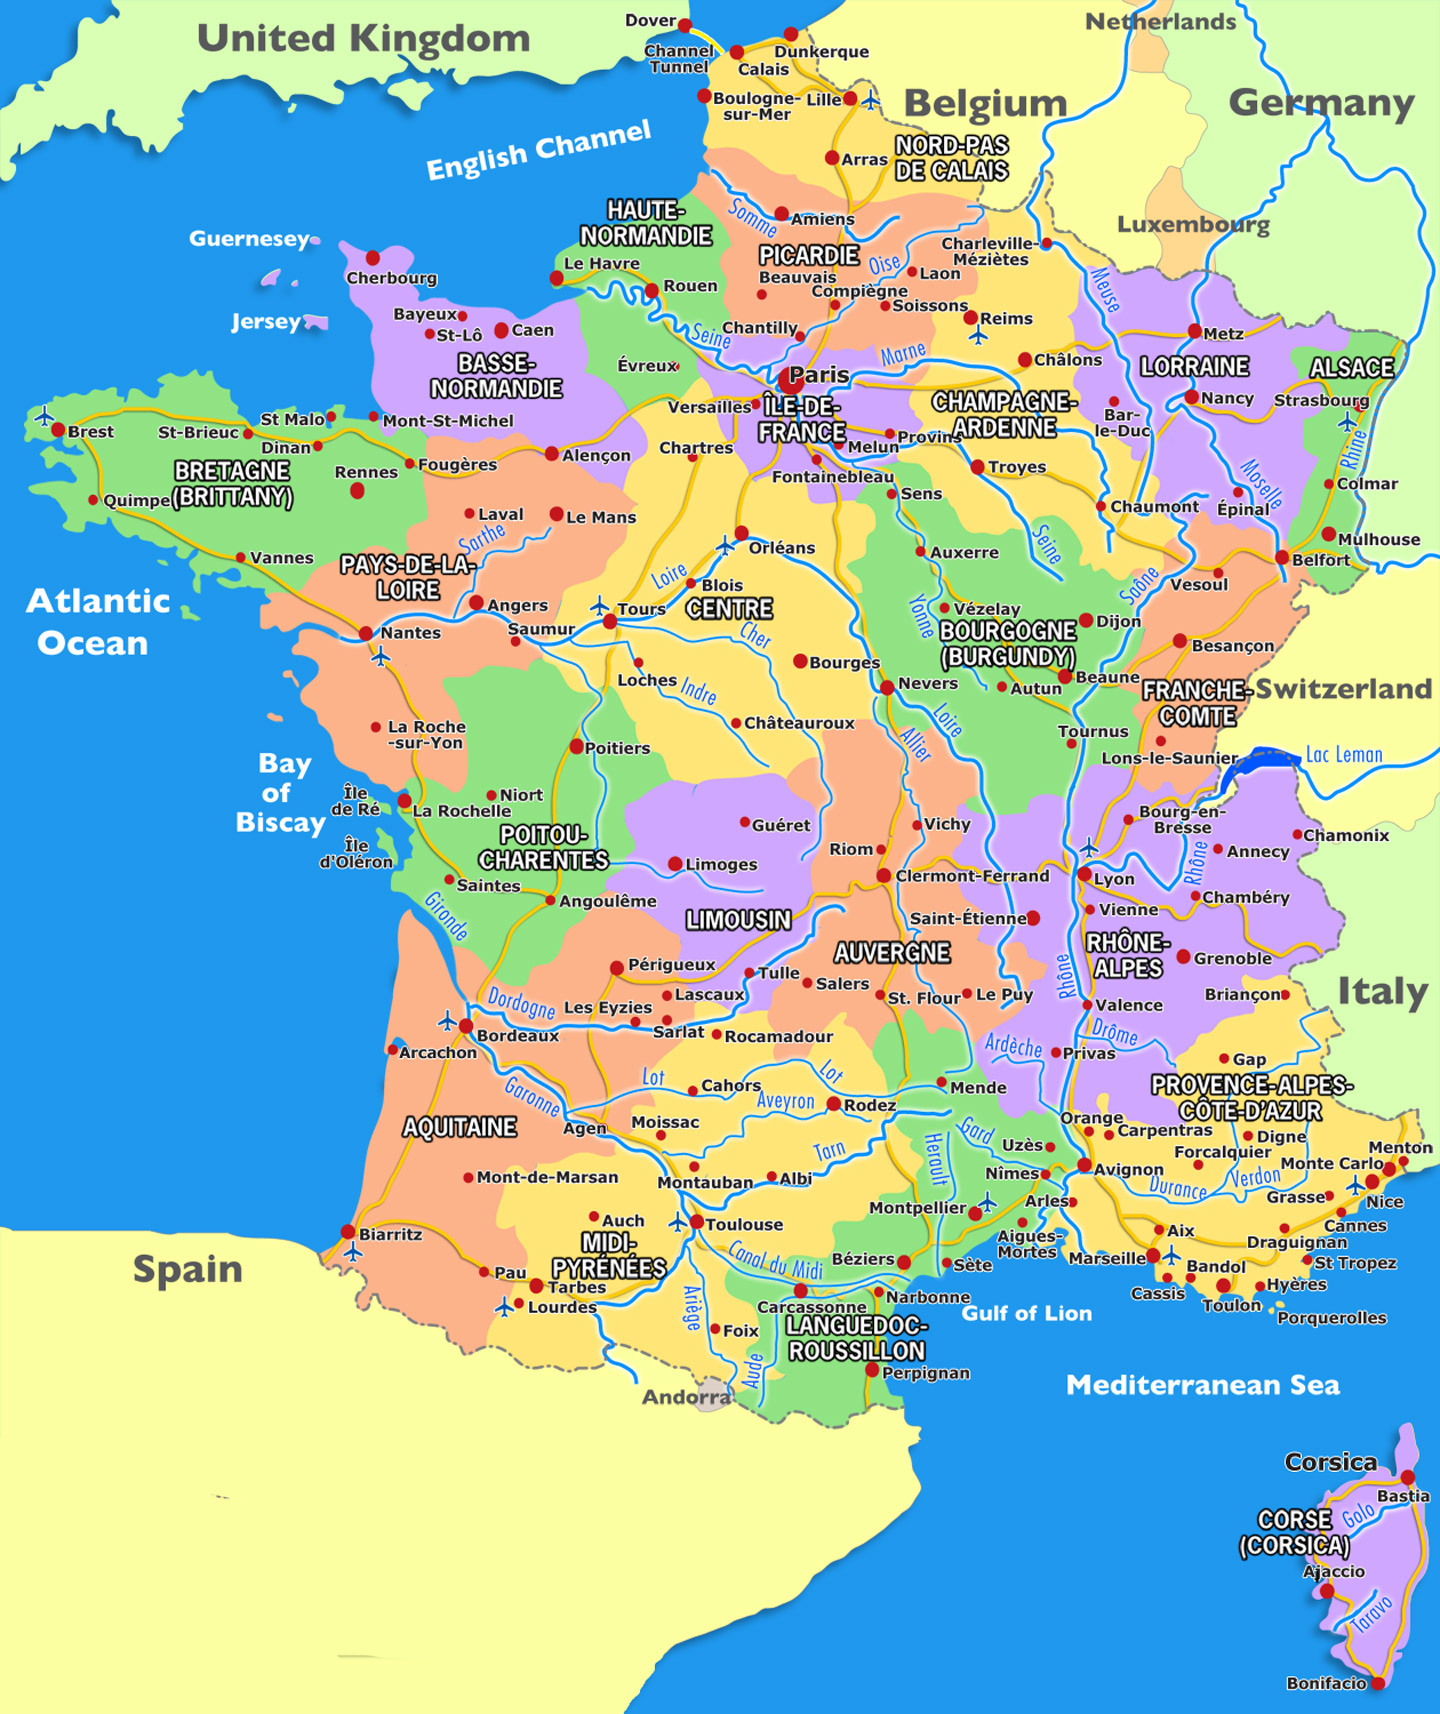 Map Of France And Luxembourg.Ds Rt 2014 Hotel Information